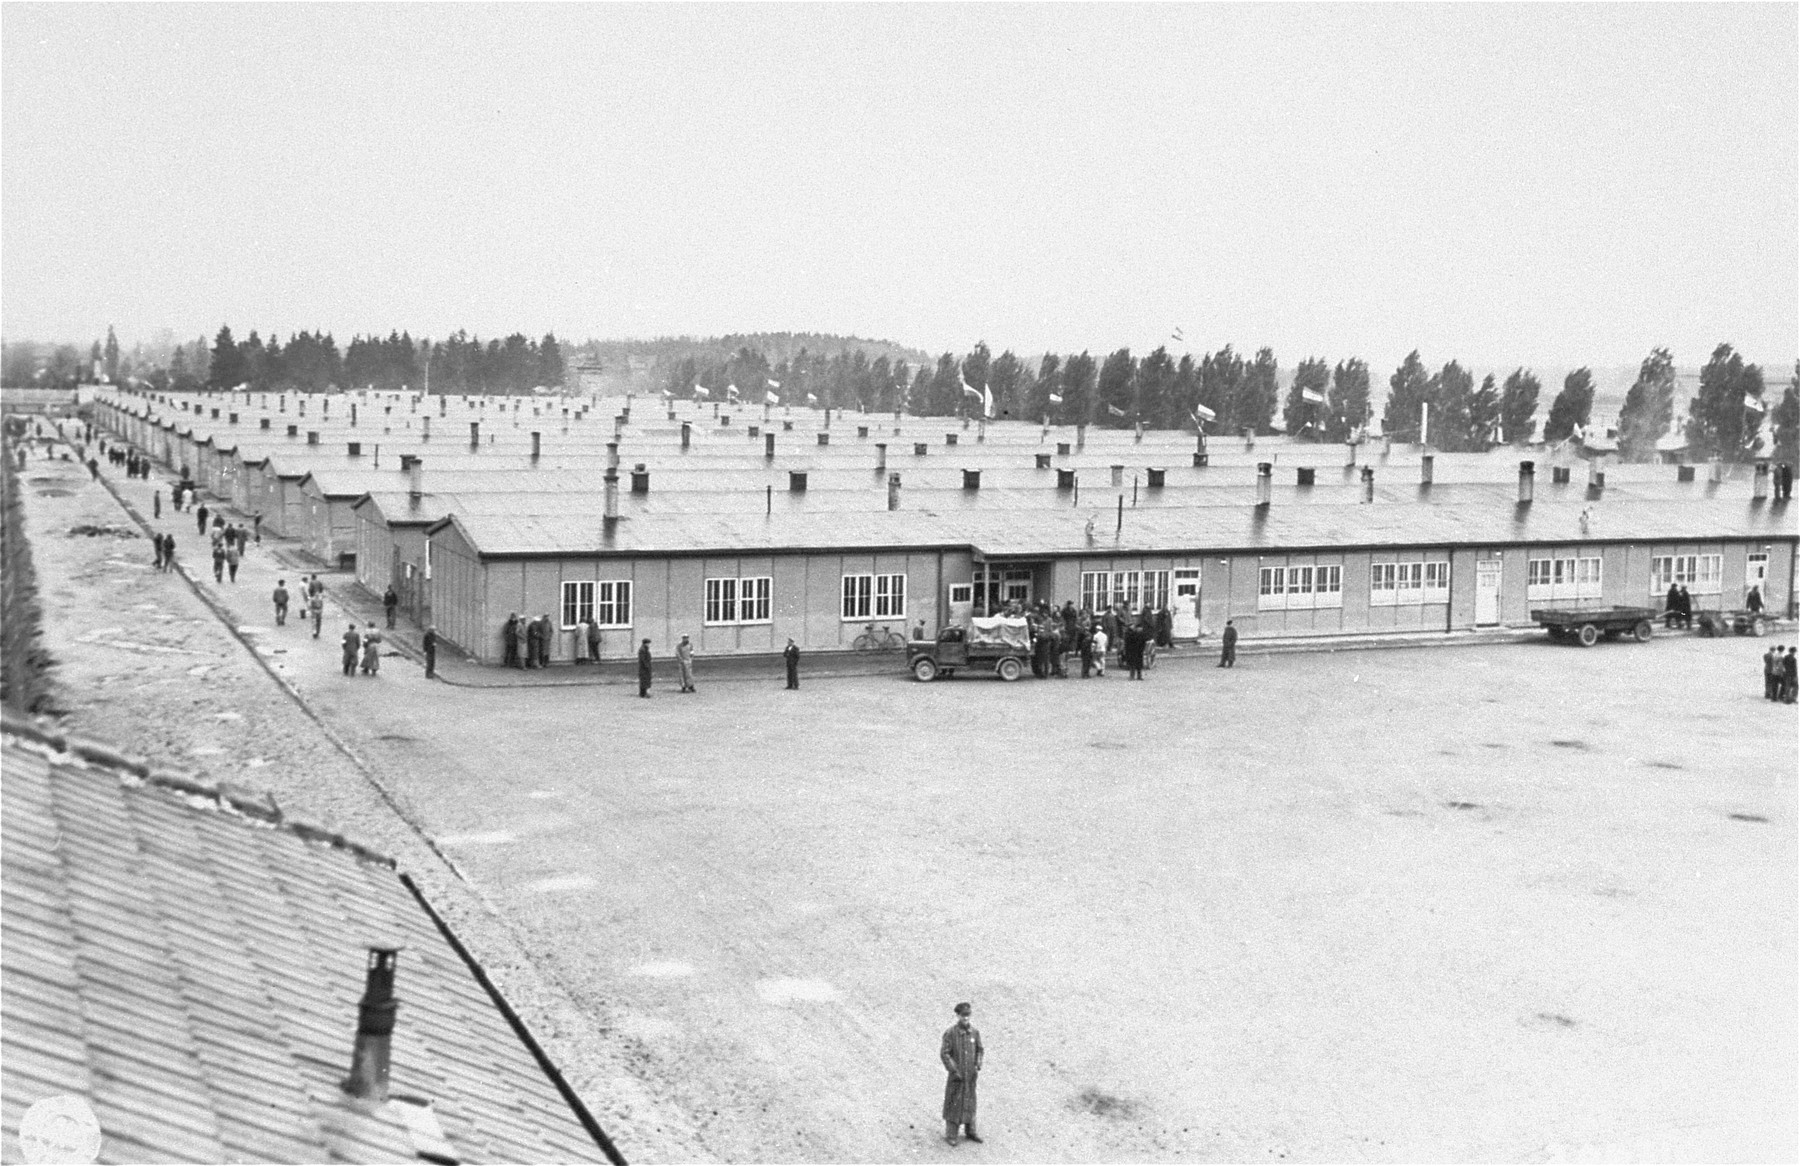 Prisoners' barracks in the Dachau concentration camp.